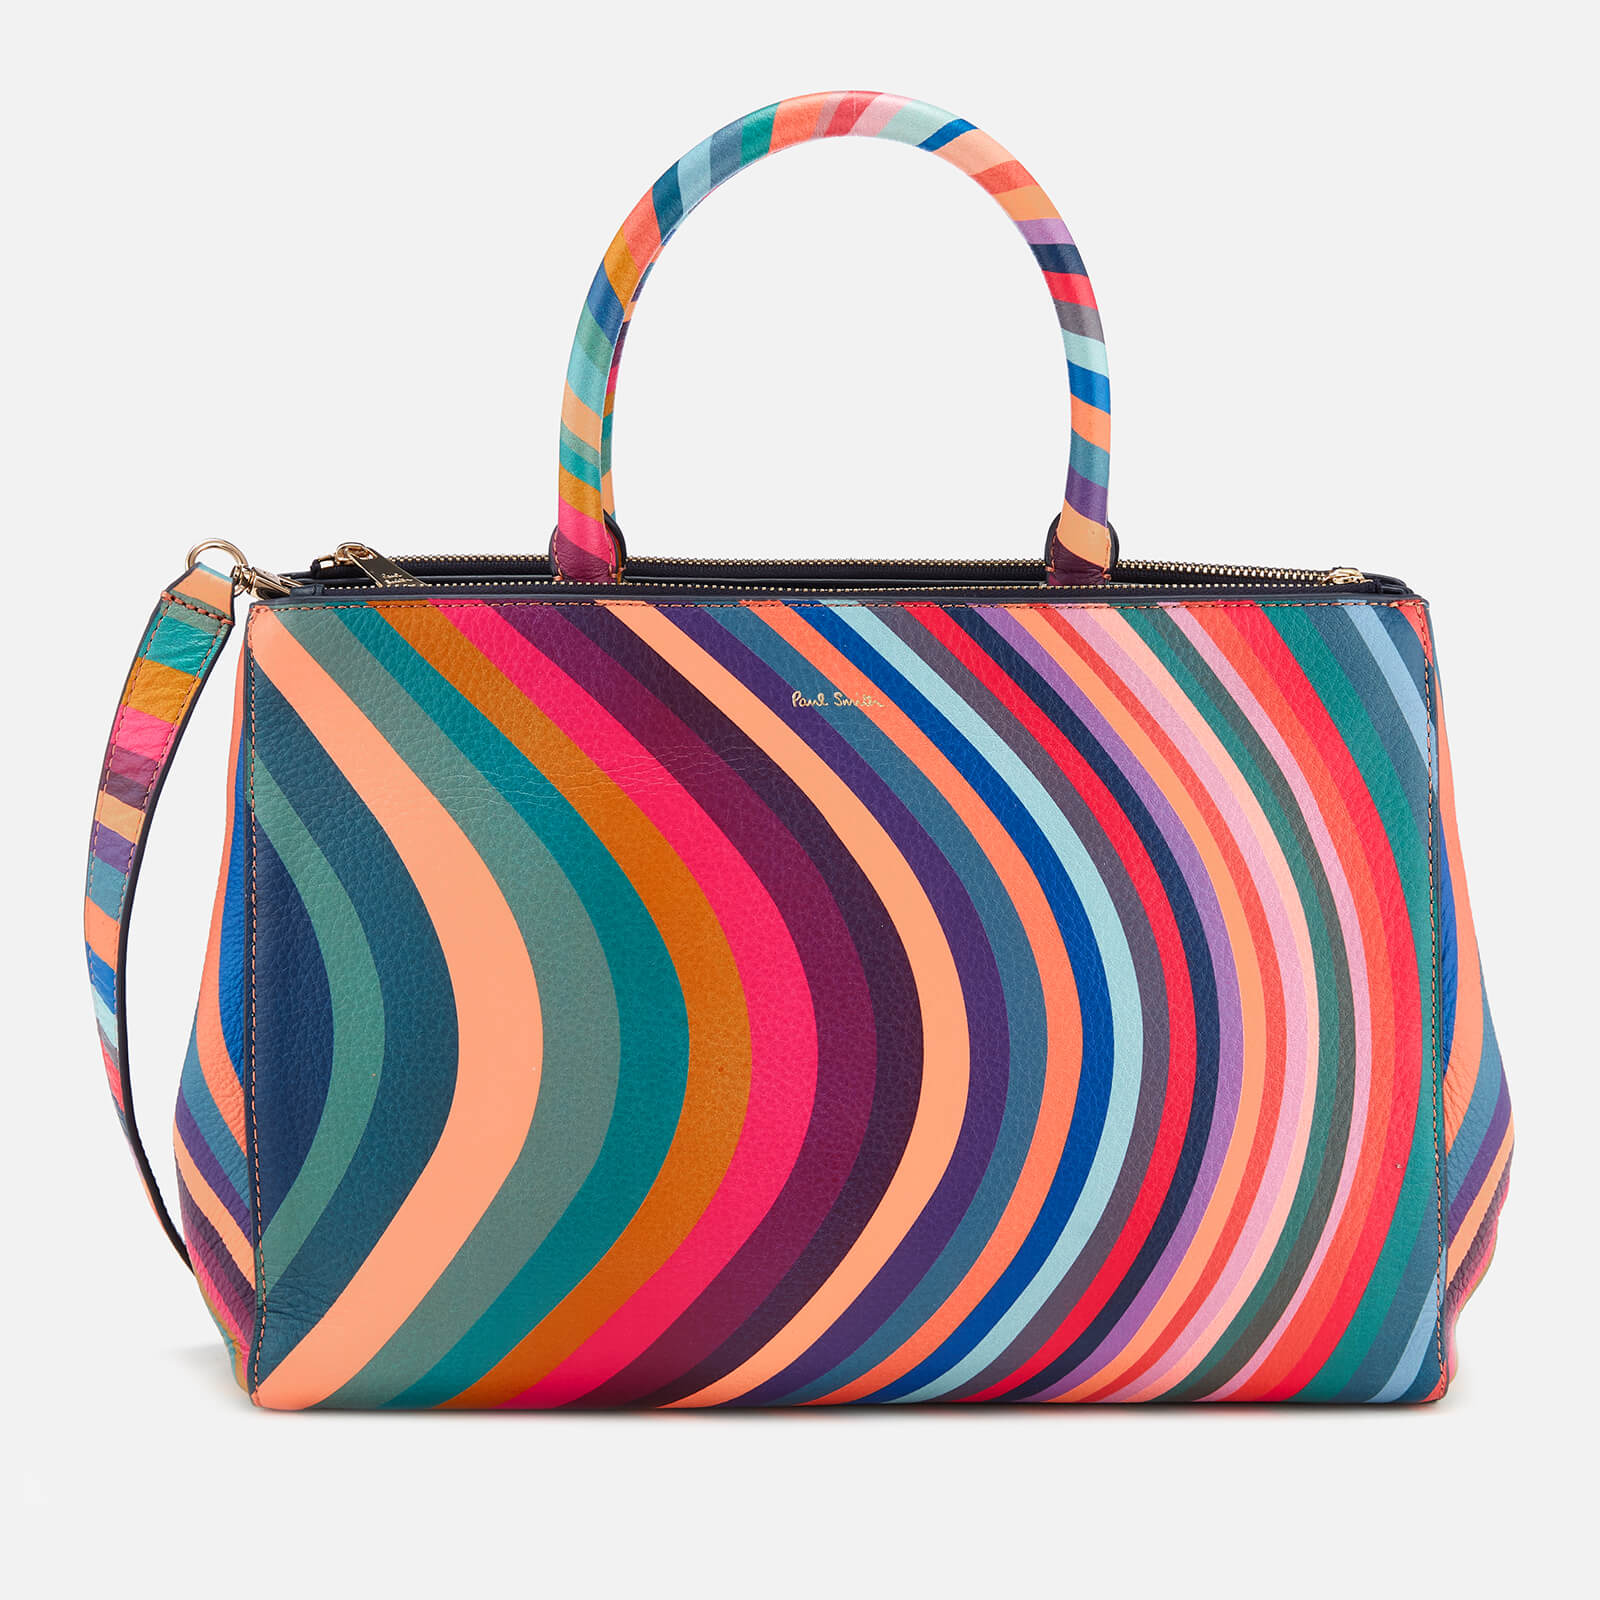 82a5dae12c97 Paul Smith Women s Double Zip Tote Bag - Multi - Free UK Delivery over £50